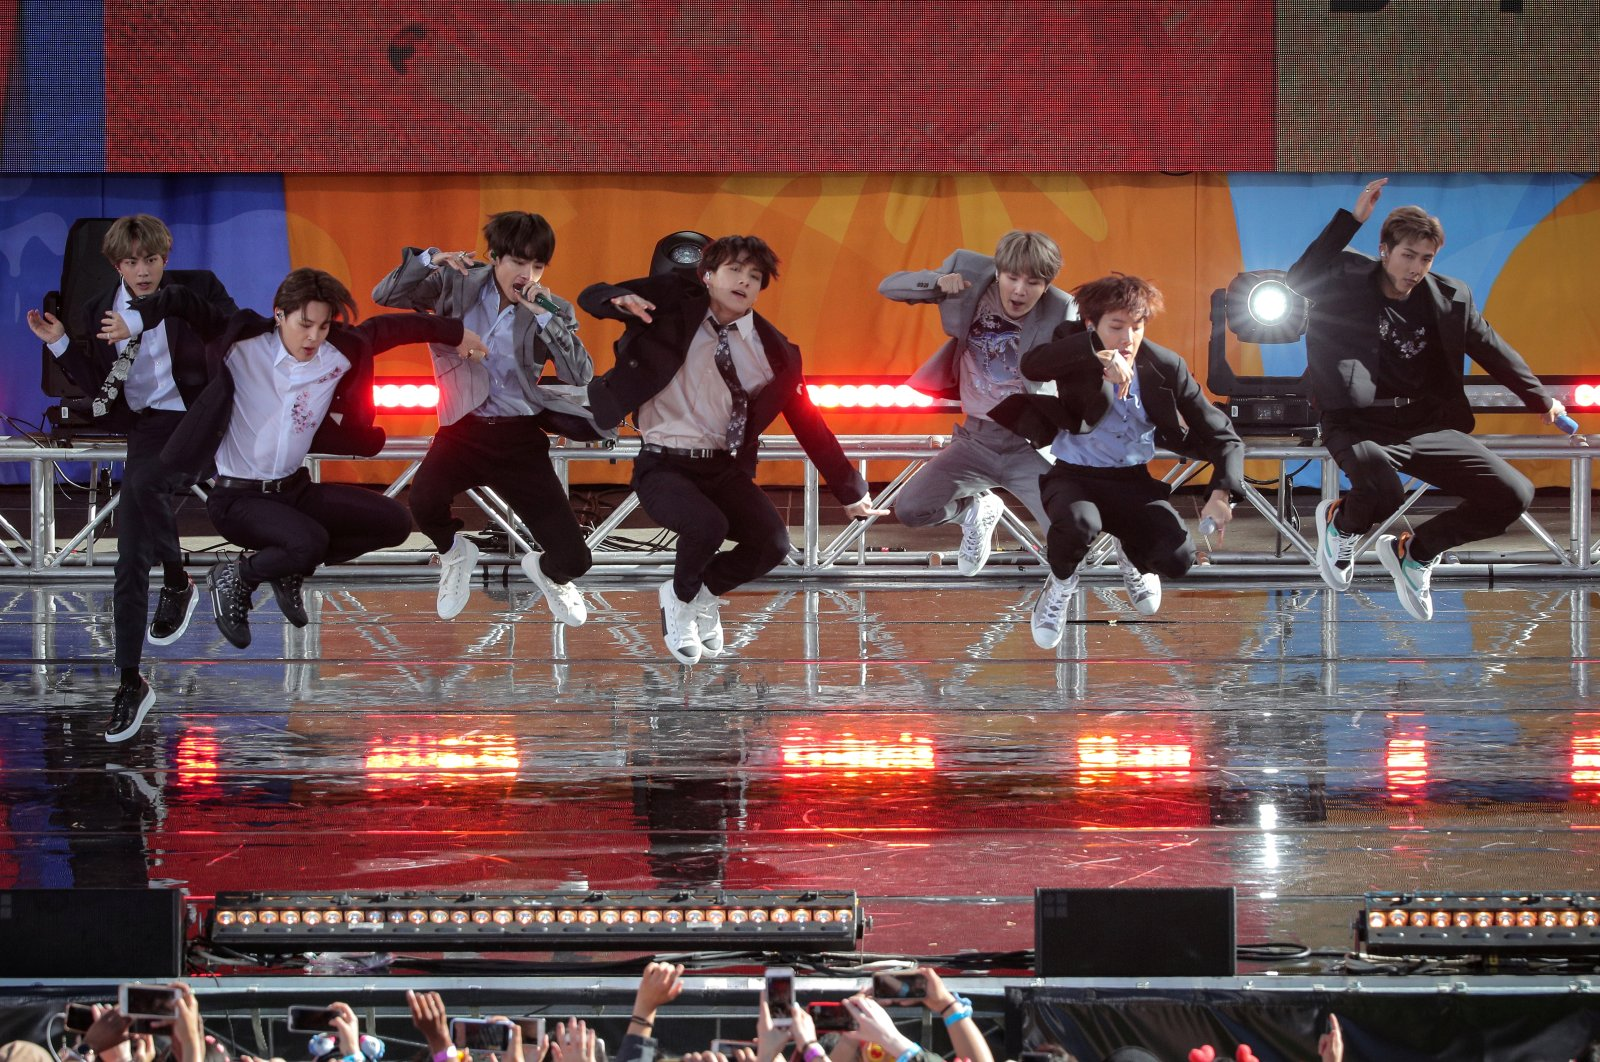 """Members of K-Pop band """"BTS"""" perform on ABC's 'Good Morning America' show in Central Park in New York City, U.S., May 15, 2019. (Reuters Photo)"""